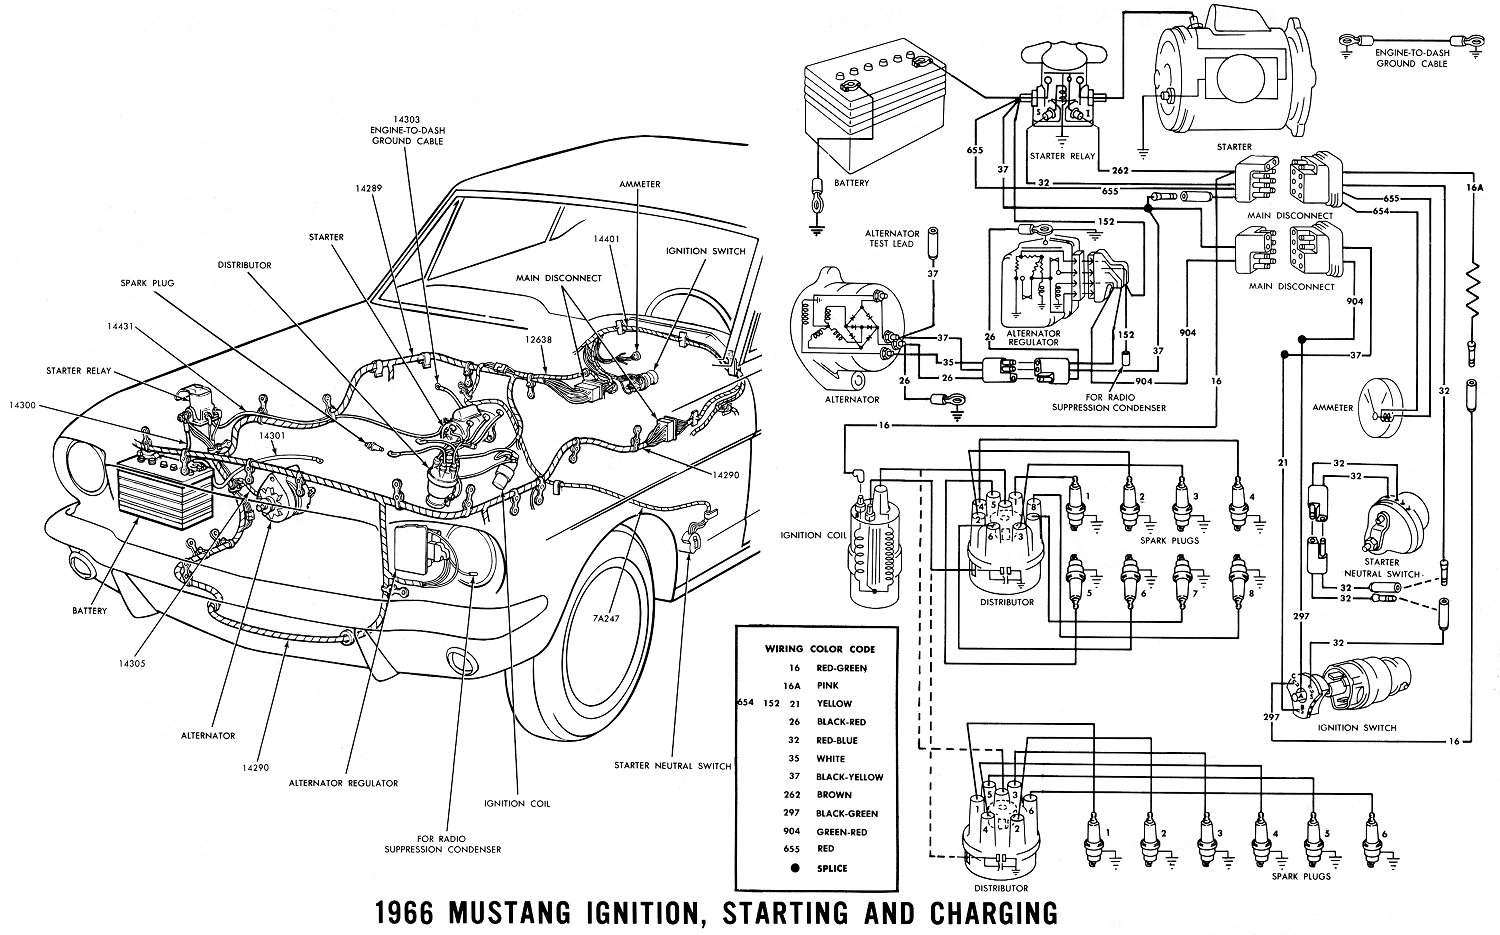 66ignit 1966 mustang wiring diagrams average joe restoration 1967 mustang ignition wiring diagram at bayanpartner.co